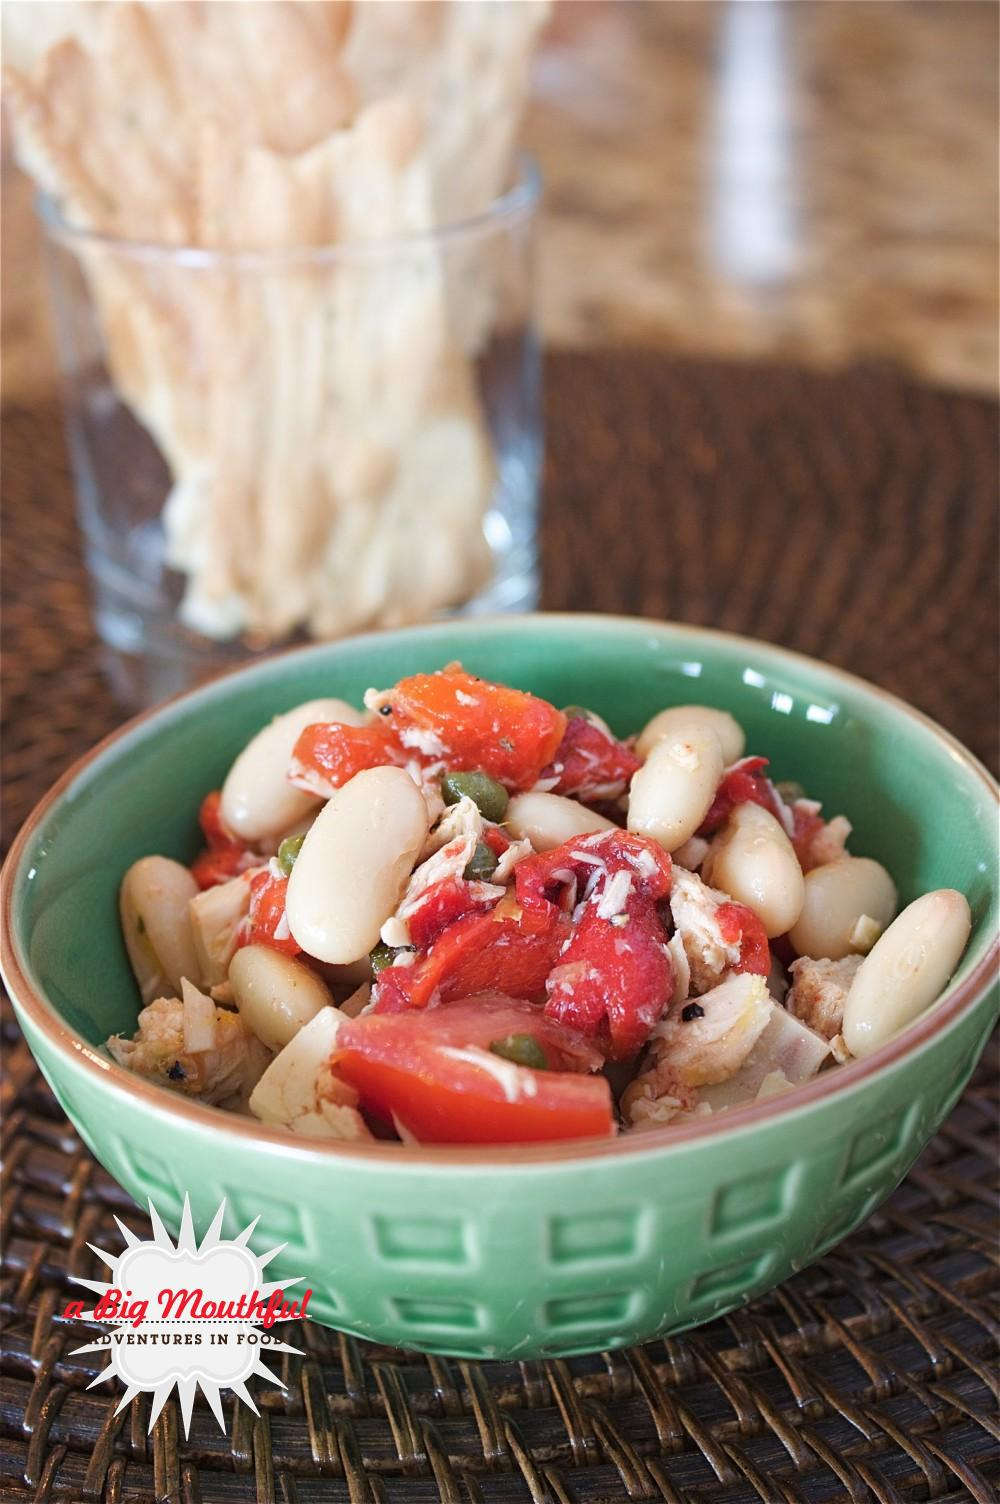 Big MouthfulLemony Tuna and White Bean Salad - A Big Mouthful